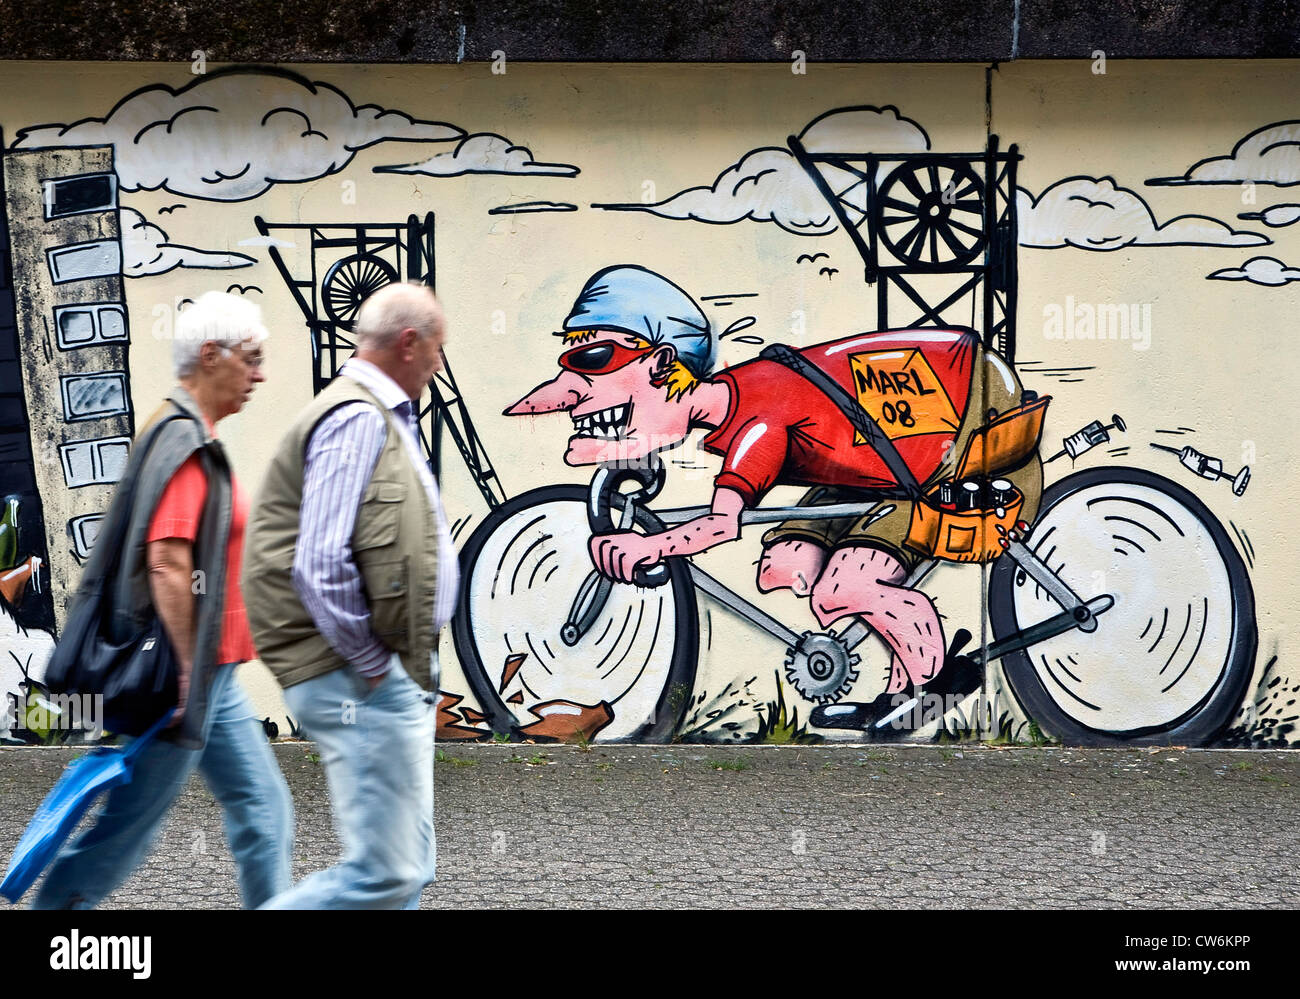 mural, doped cyclist drives in glass, Germany, North Rhine-Westphalia, Ruhr Area, Marl - Stock Image